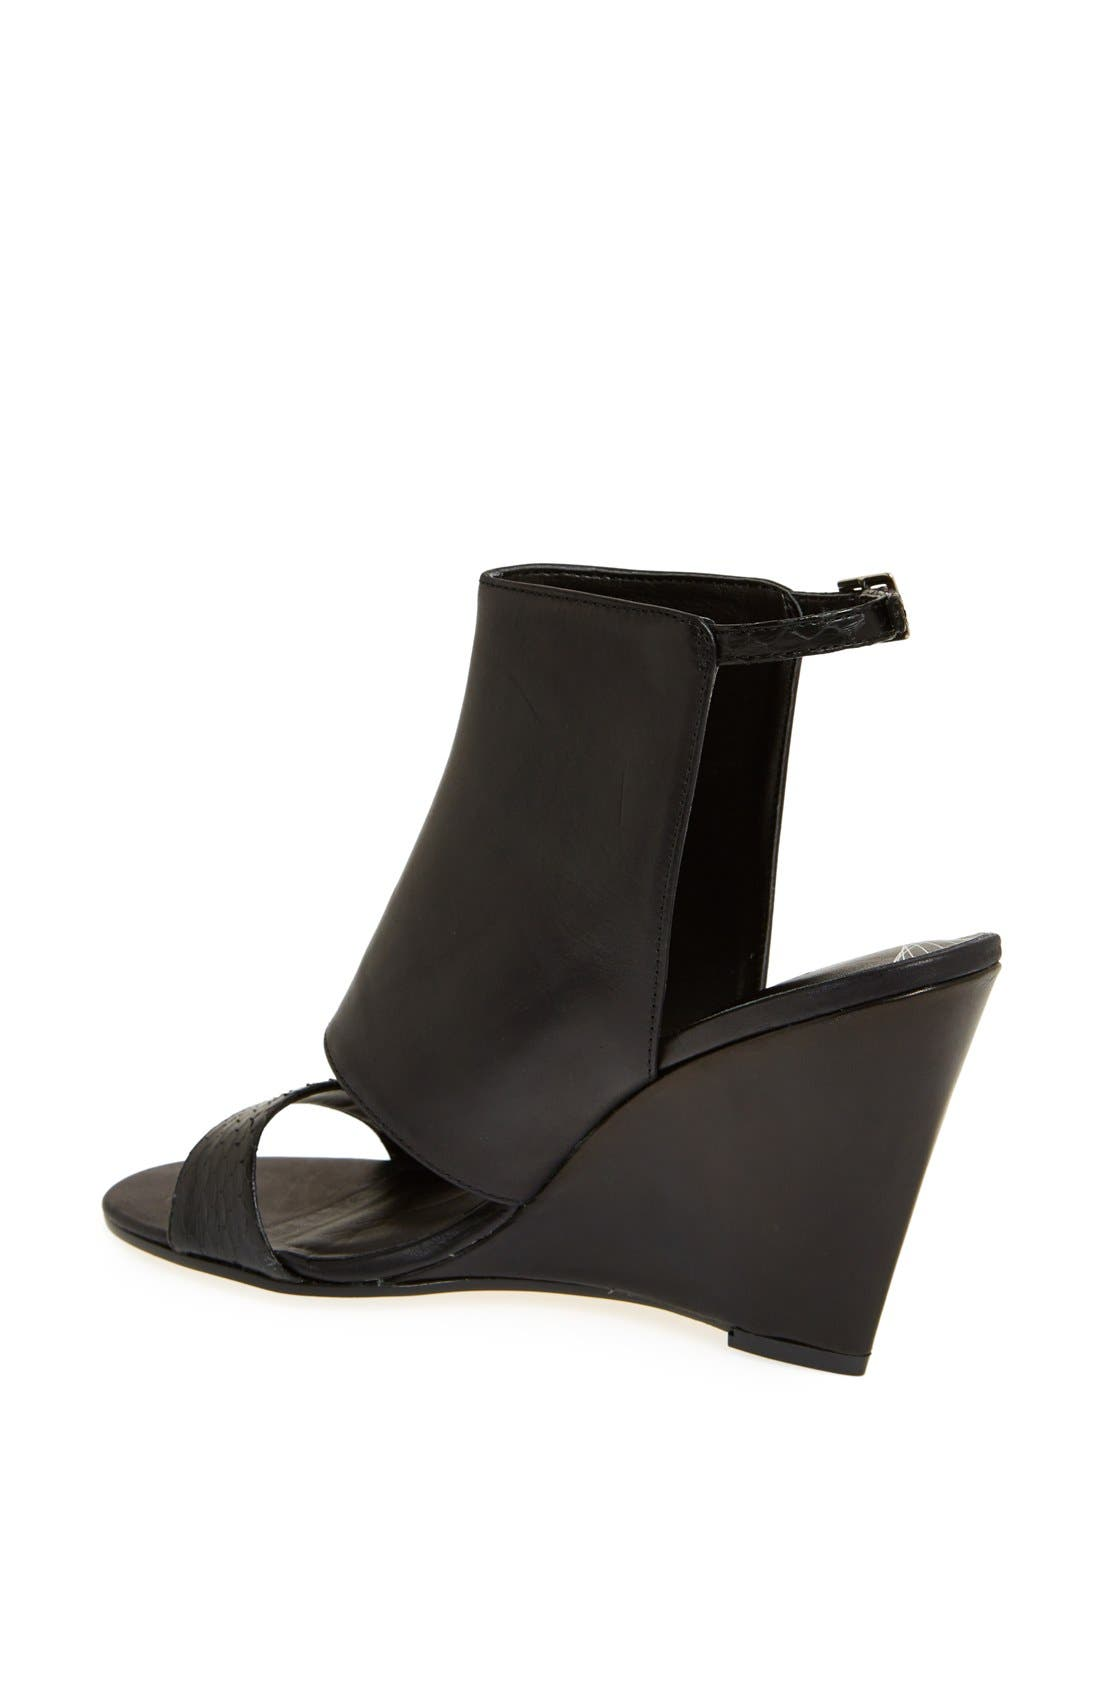 Alternate Image 2  - Trouvé 'Raley' Cuff Wedge Sandal